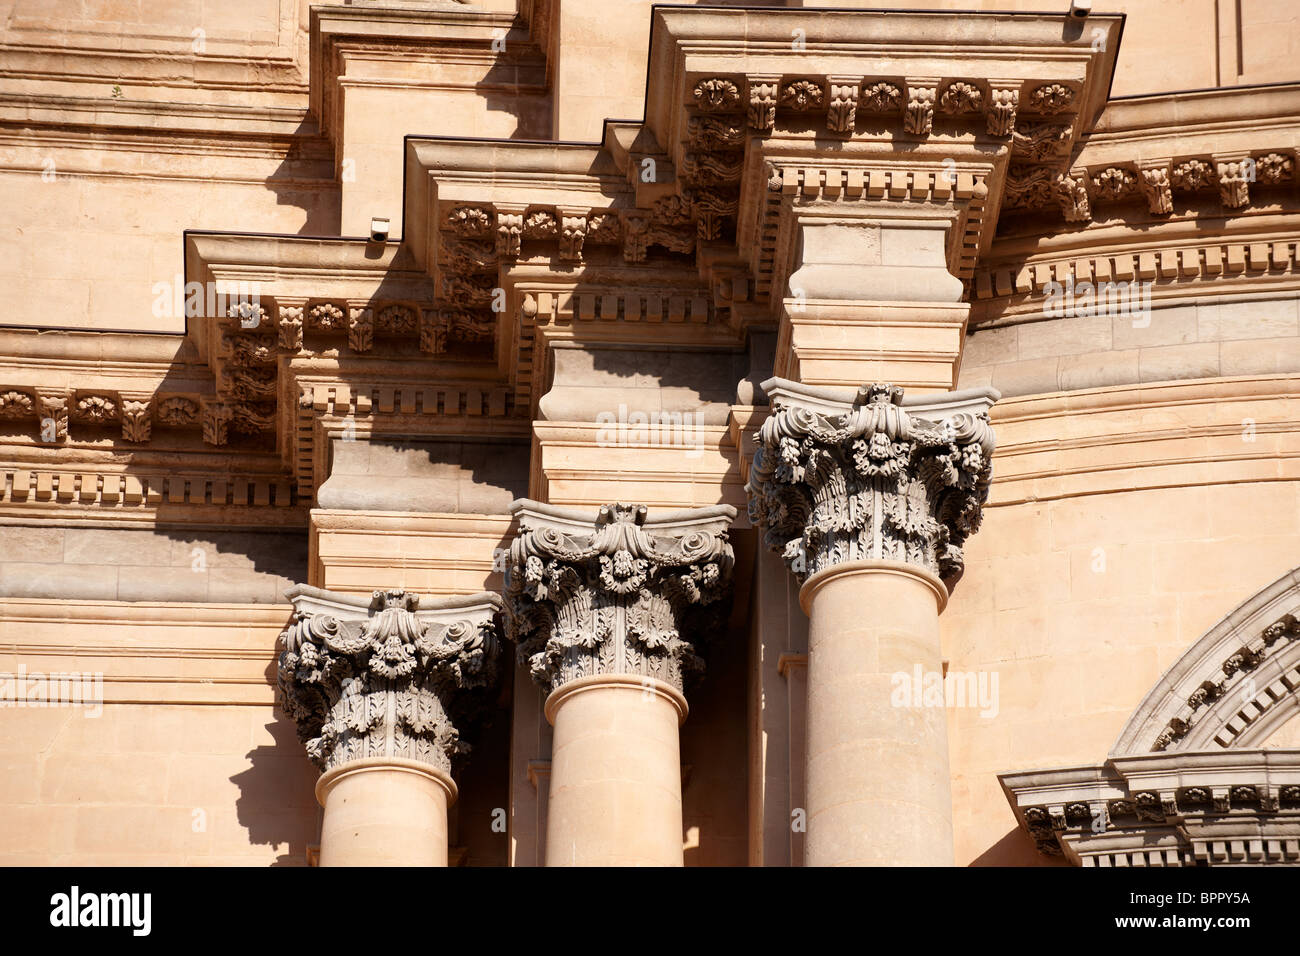 Corintian columns of the Baroque cathedral of St George designed by Rosario Gagliardi , Plaza Duomo, Ragusa Ibla, - Stock Image